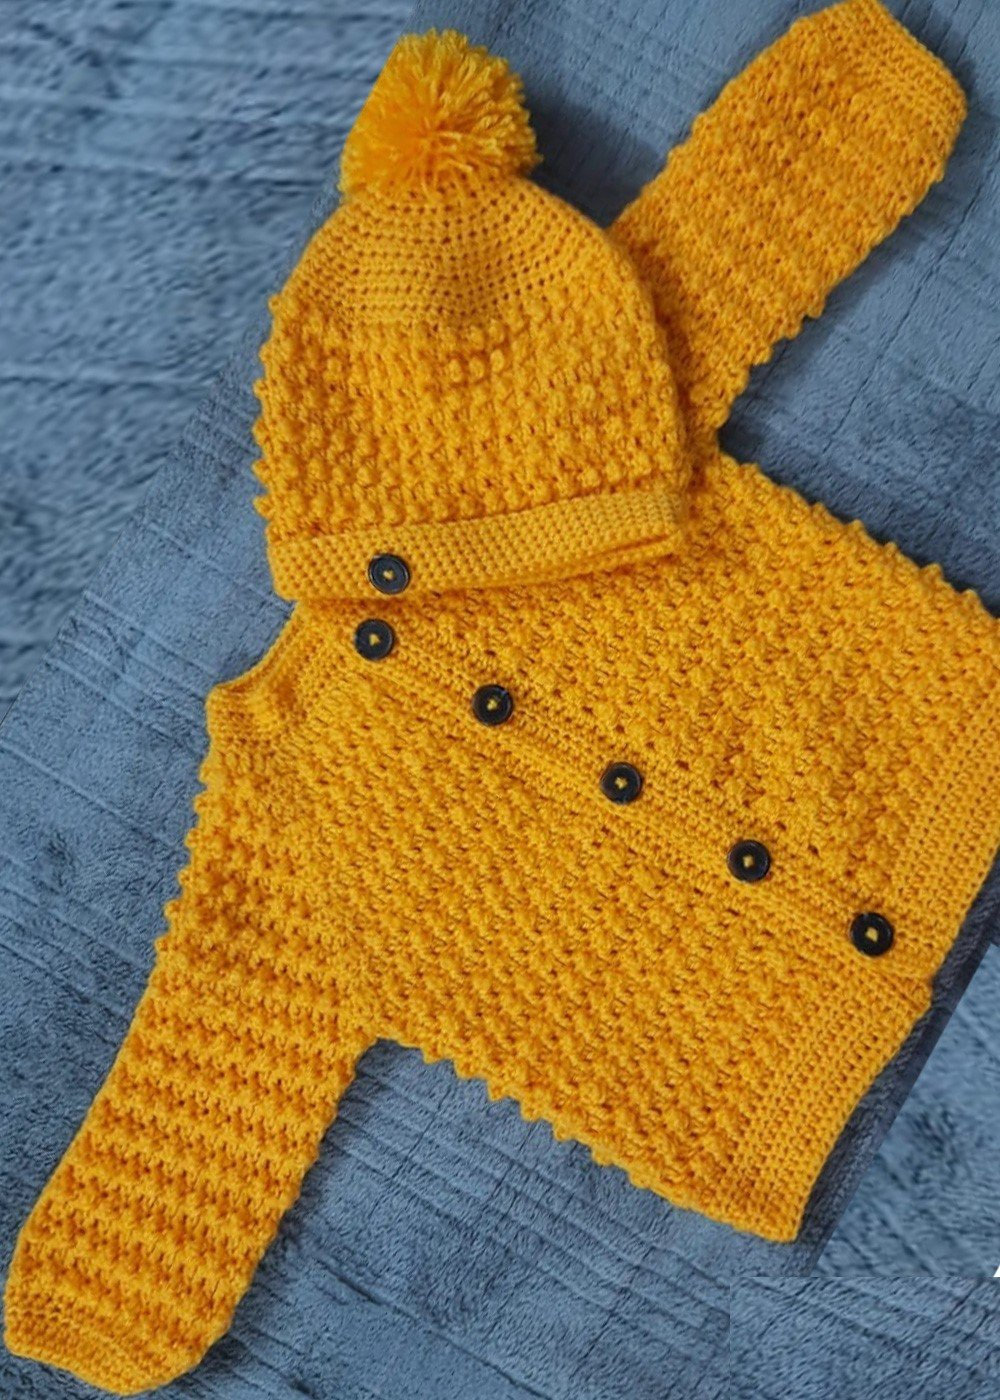 Hand Crochet Mustard Fleece Baby